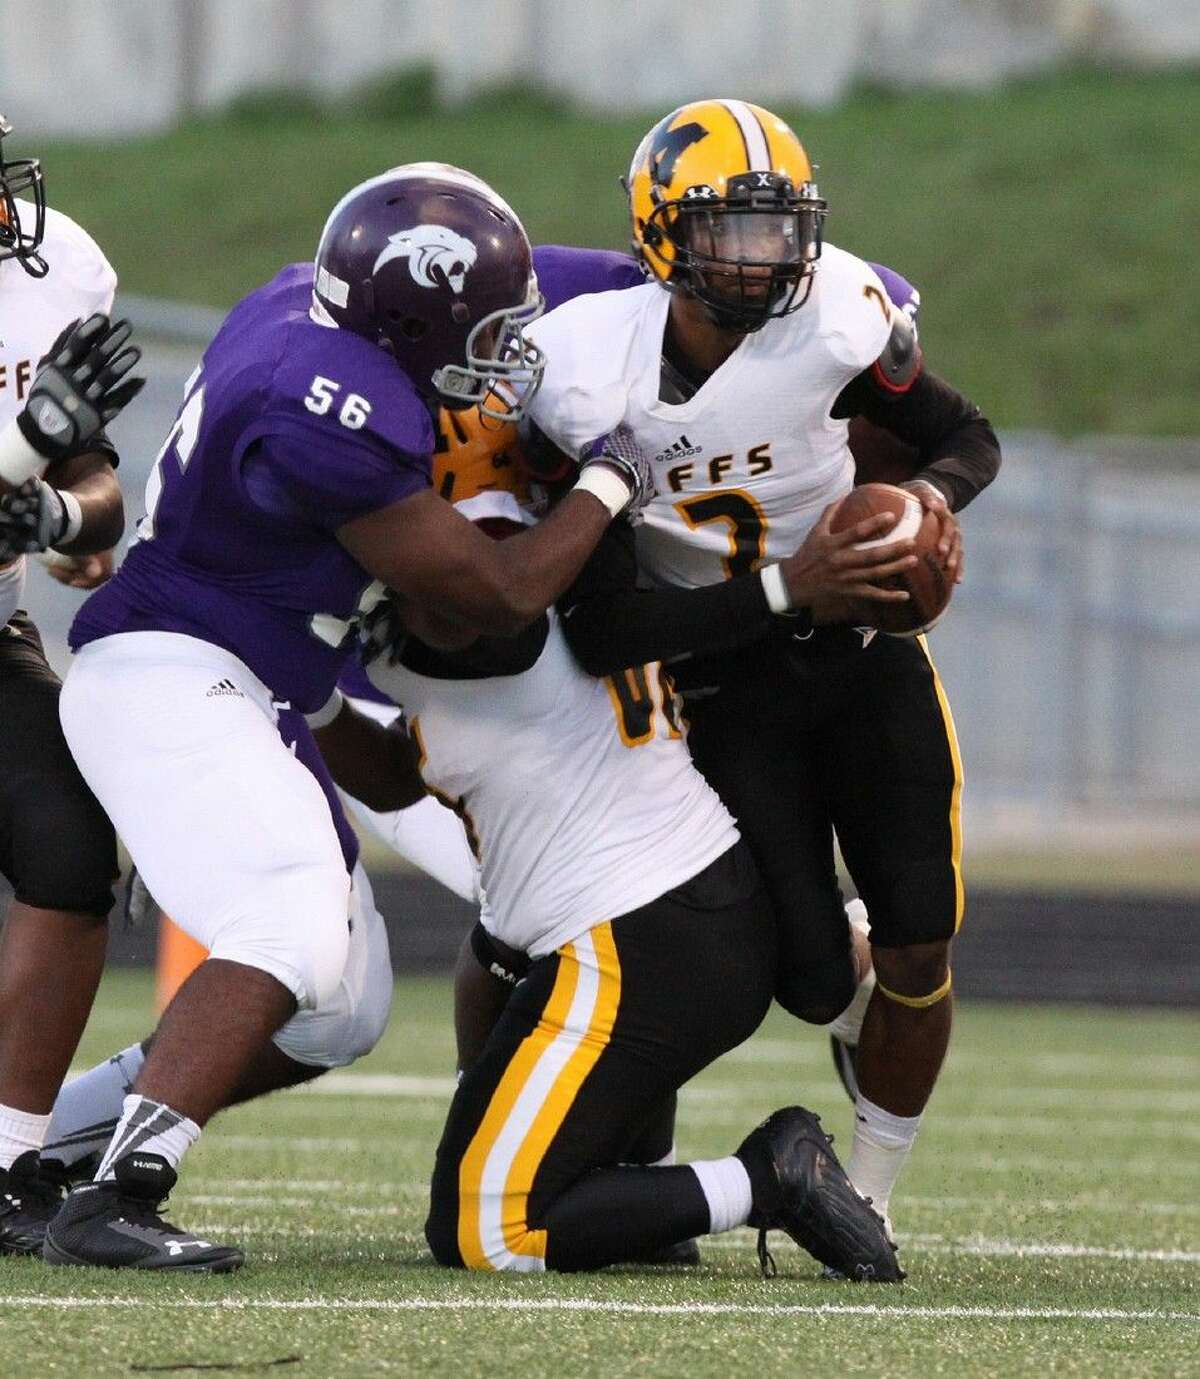 Ridge Point's Michael Obi grabs Marshall's Jeremy Smith during a 2014 District 23-5A game at Hall Stadium in Missouri City. The Panthers and Buffalos have both won district titles during the last three years.